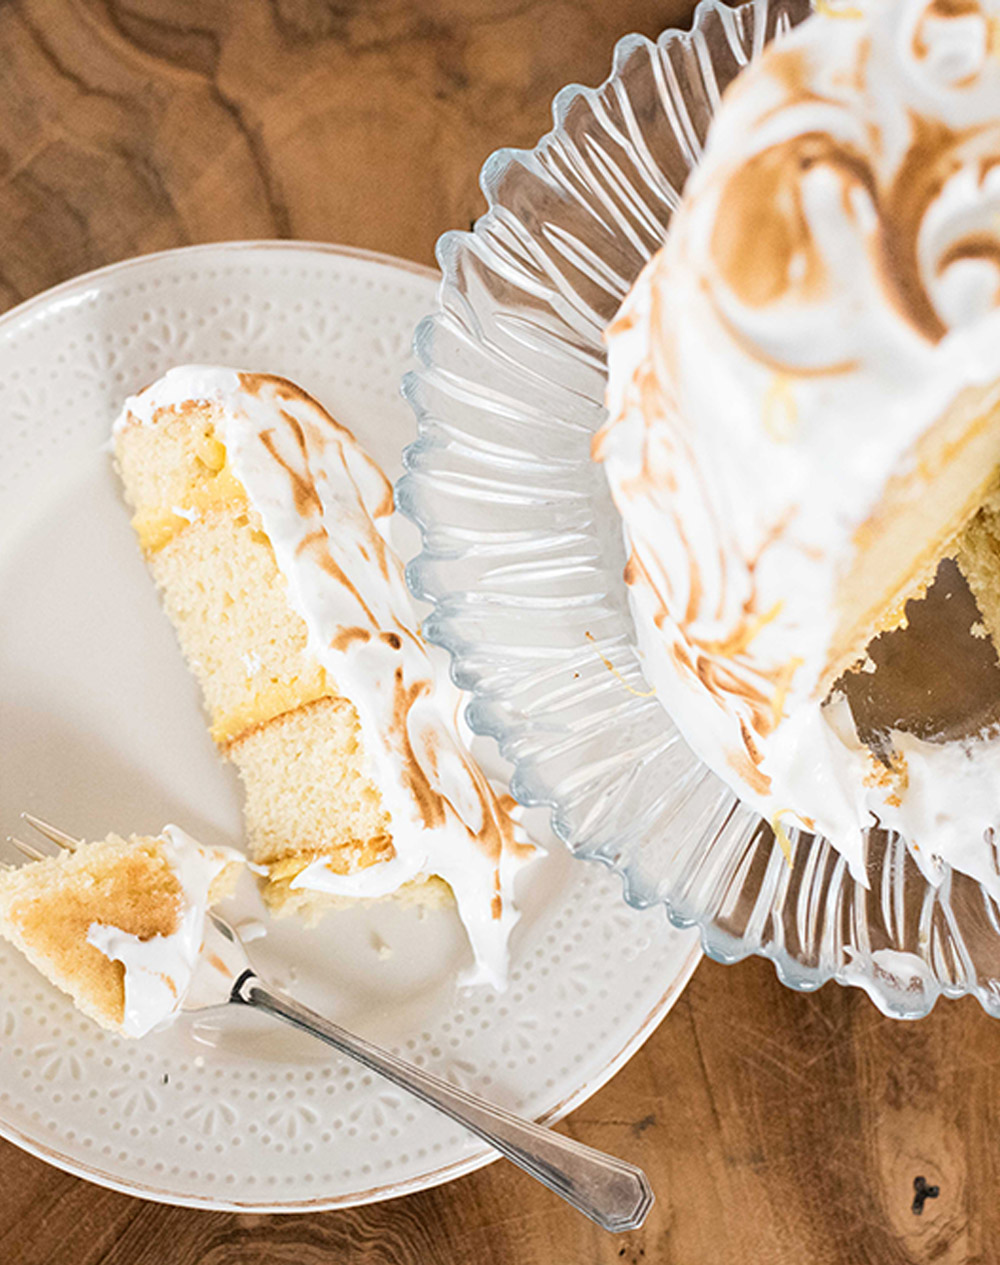 Kates' Lemon Meringue Cake / Kate Martens (p)